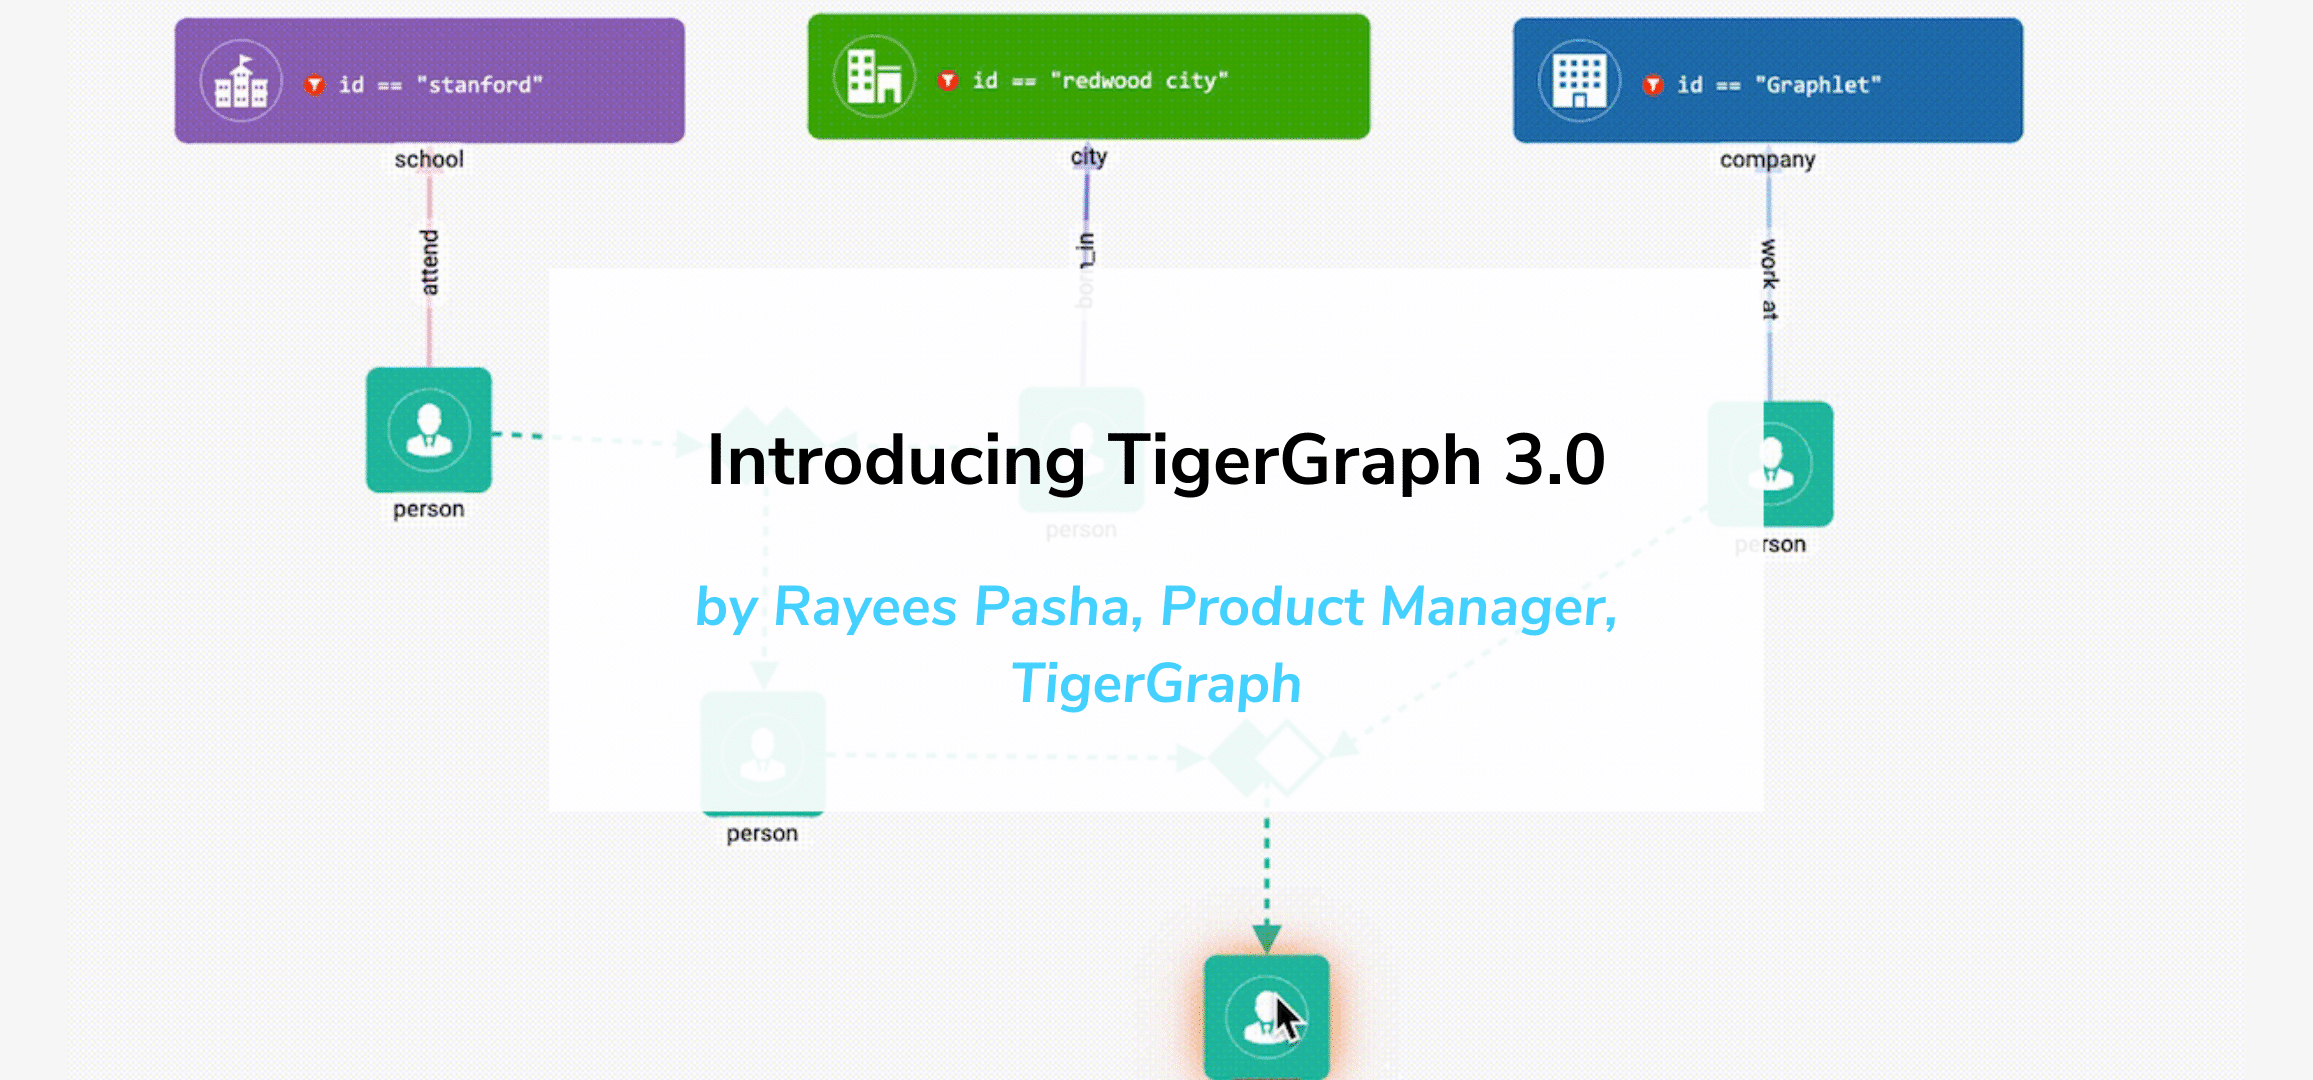 Introducing TigerGraph 3.0